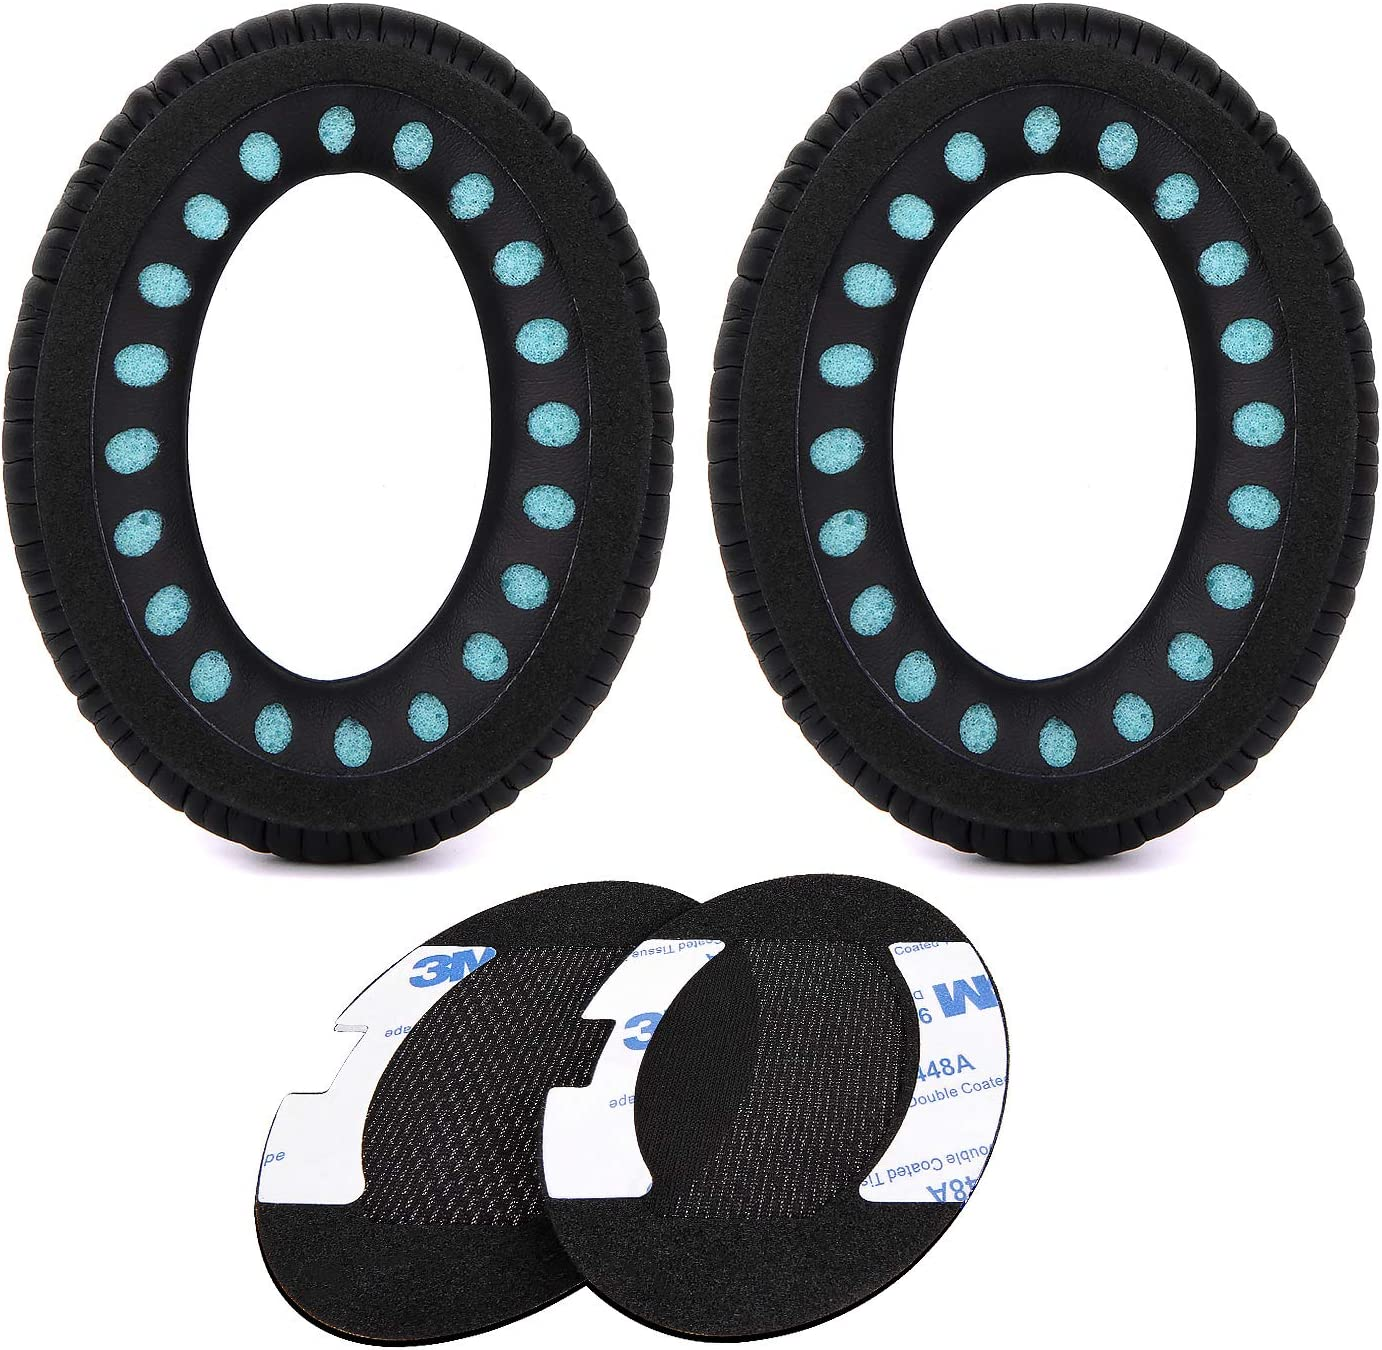 Ae2 Quiet Comfort 15 QC 25 QuietComfort 35 Headphones Sound True JARMOR Ear Cushion for Bose QuietComfort 2 QC15 Replacement Ear Pads Kit Around-Ear Only Sound Link Black Ae2i Ae2w